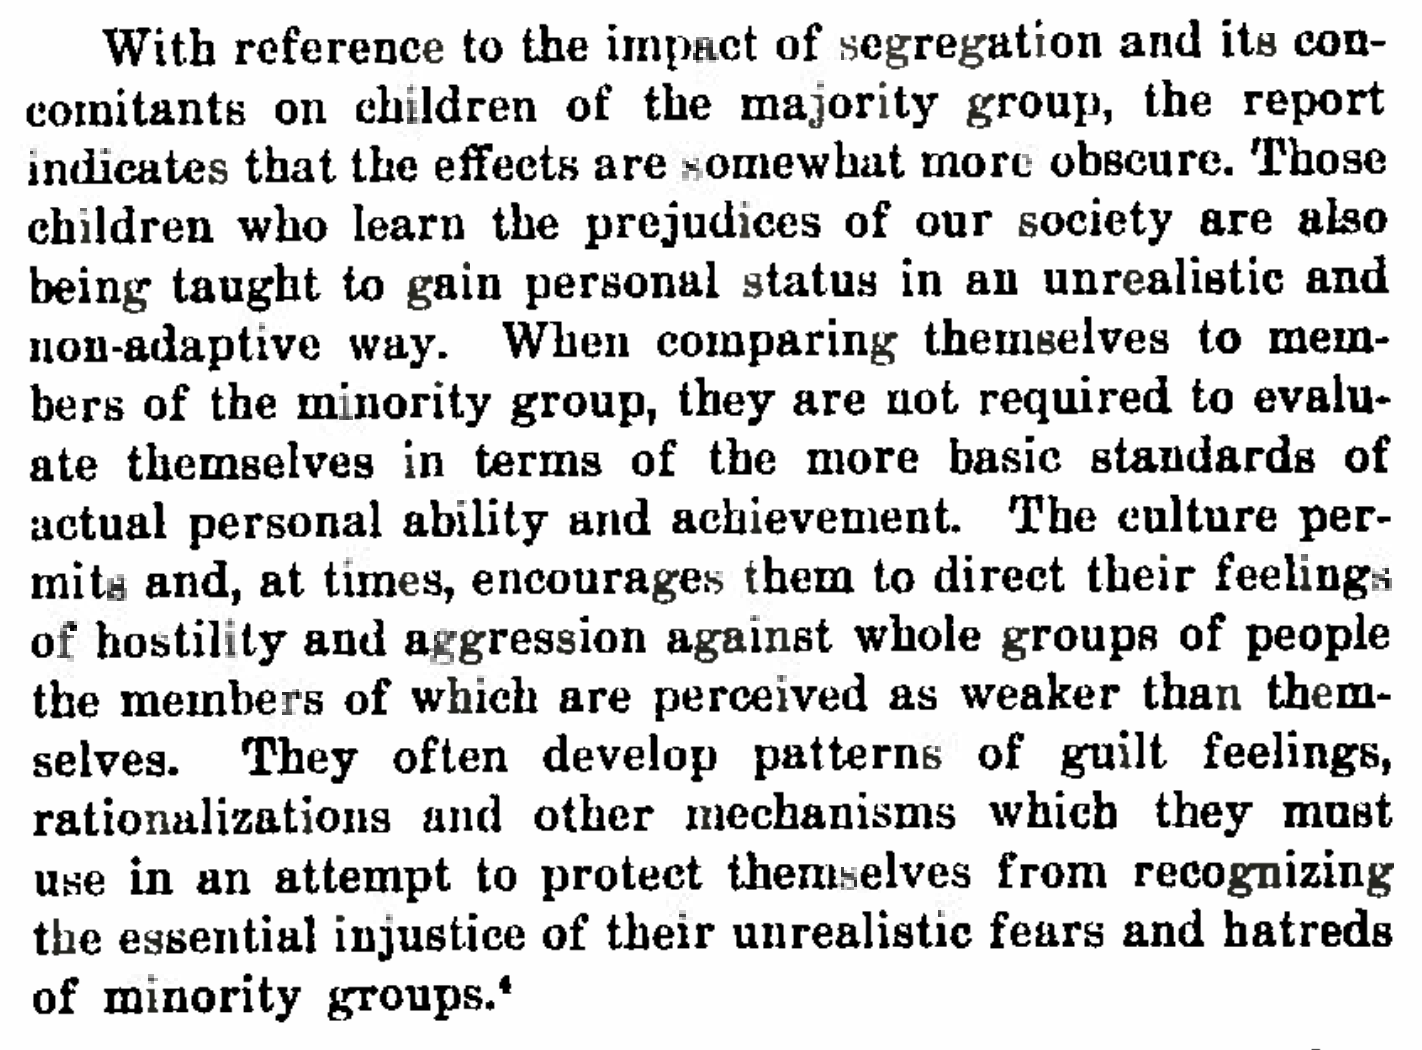 Click to read this excerpt from the social science statement submitted by the NAACP to the Supreme Court in 1952.Kenneth and Mamie Clark and 30 other social scientists signed it.Read the entire statement  here .